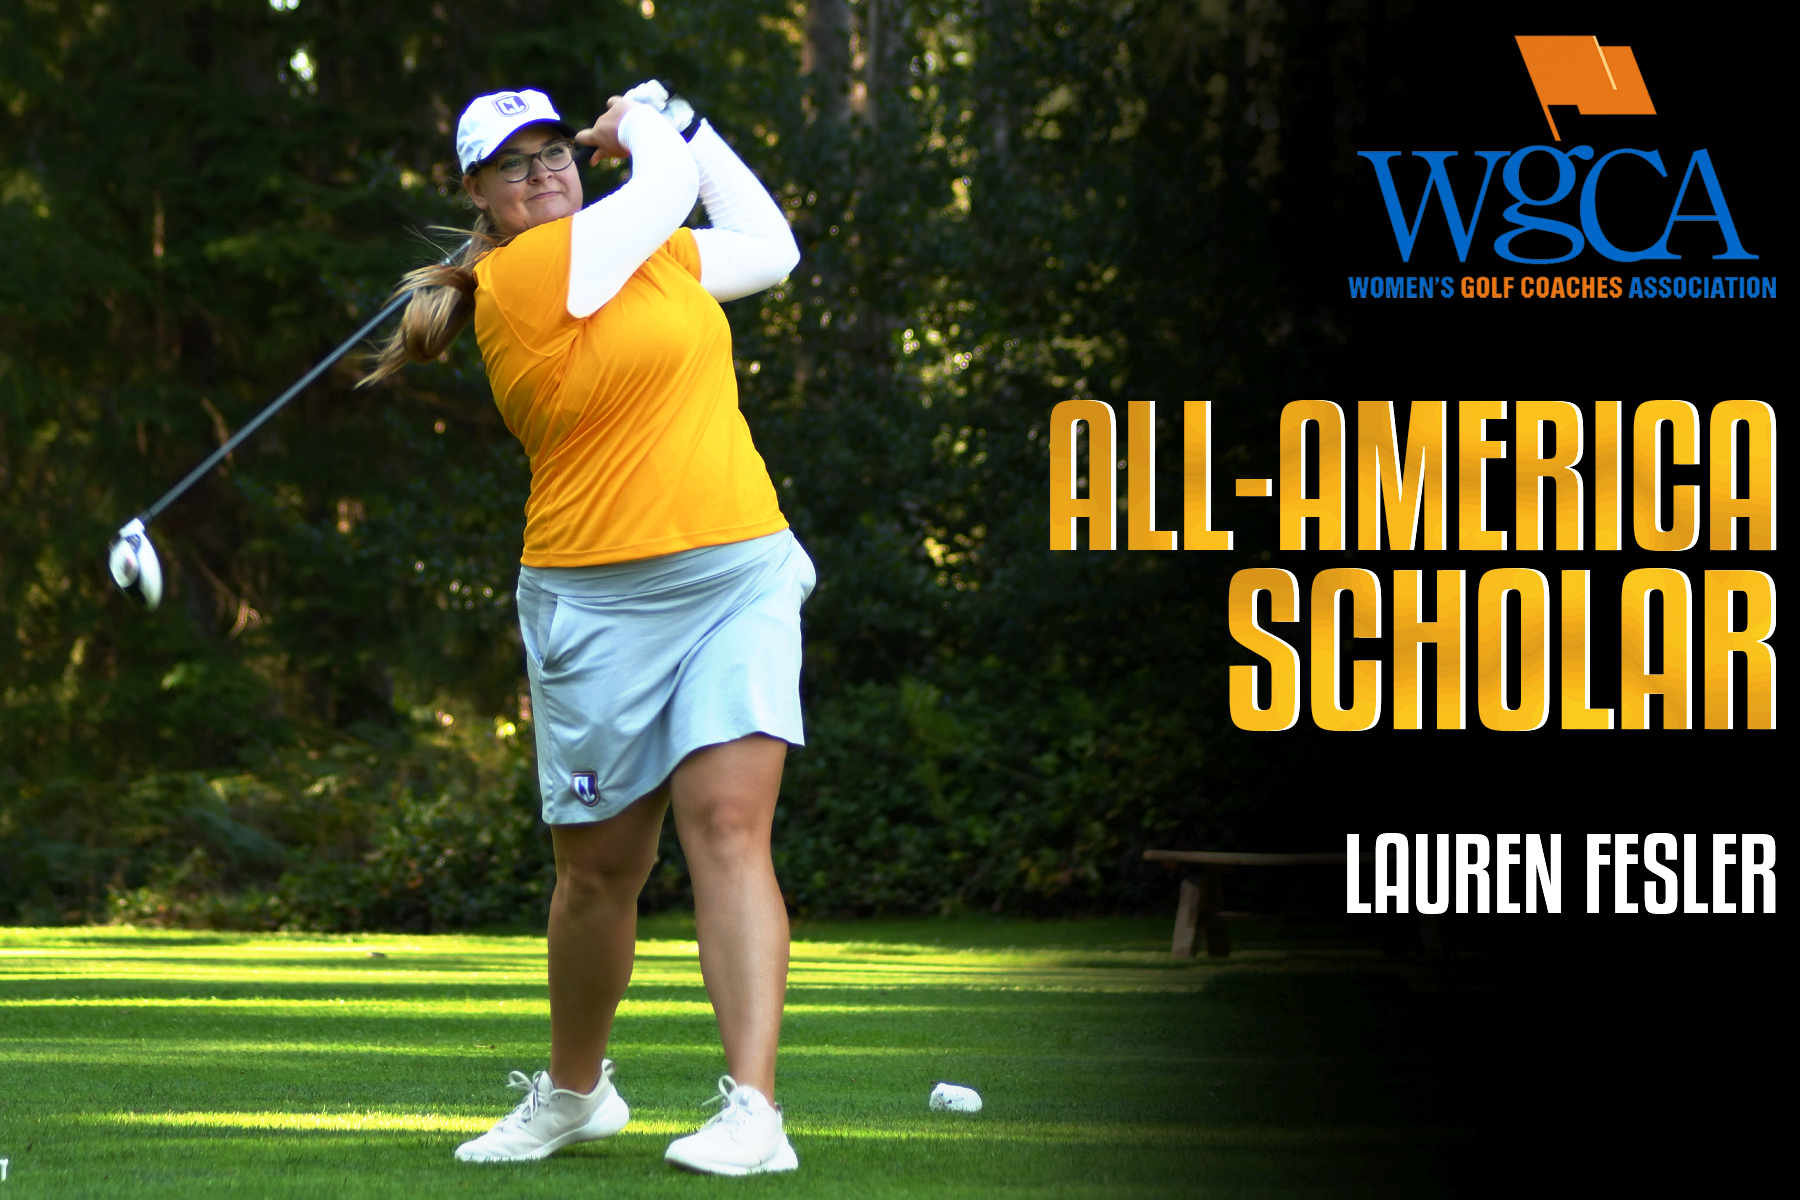 Fesler Earns All-American Scholar for Second Consecutive Year